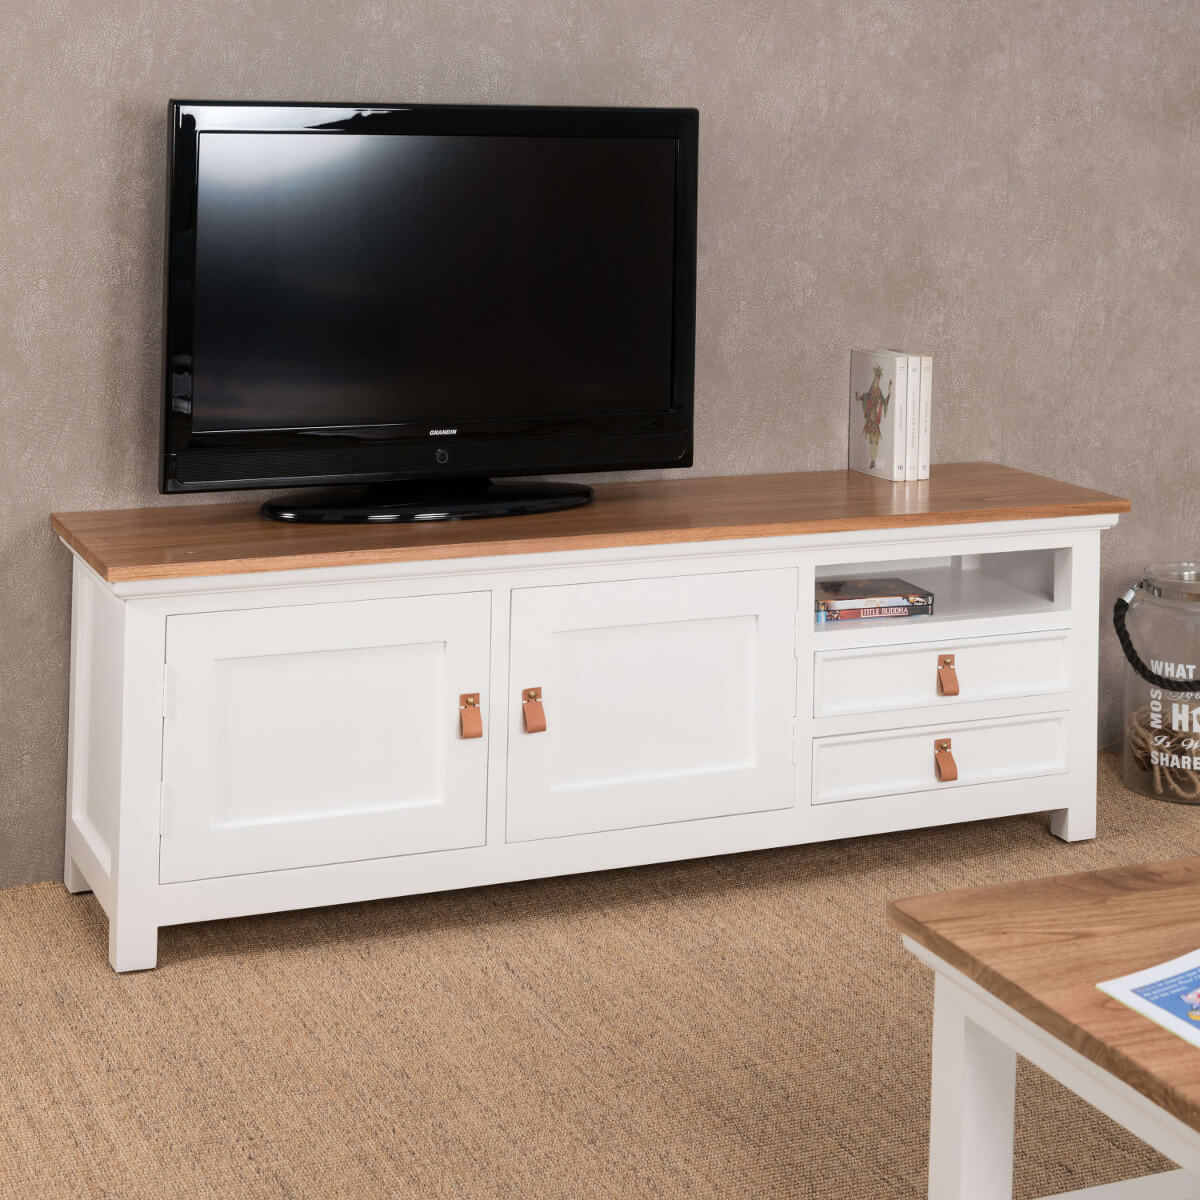 Meuble tv salon bois massif teck et pin chic rectangle for Meuble de sejour blanc